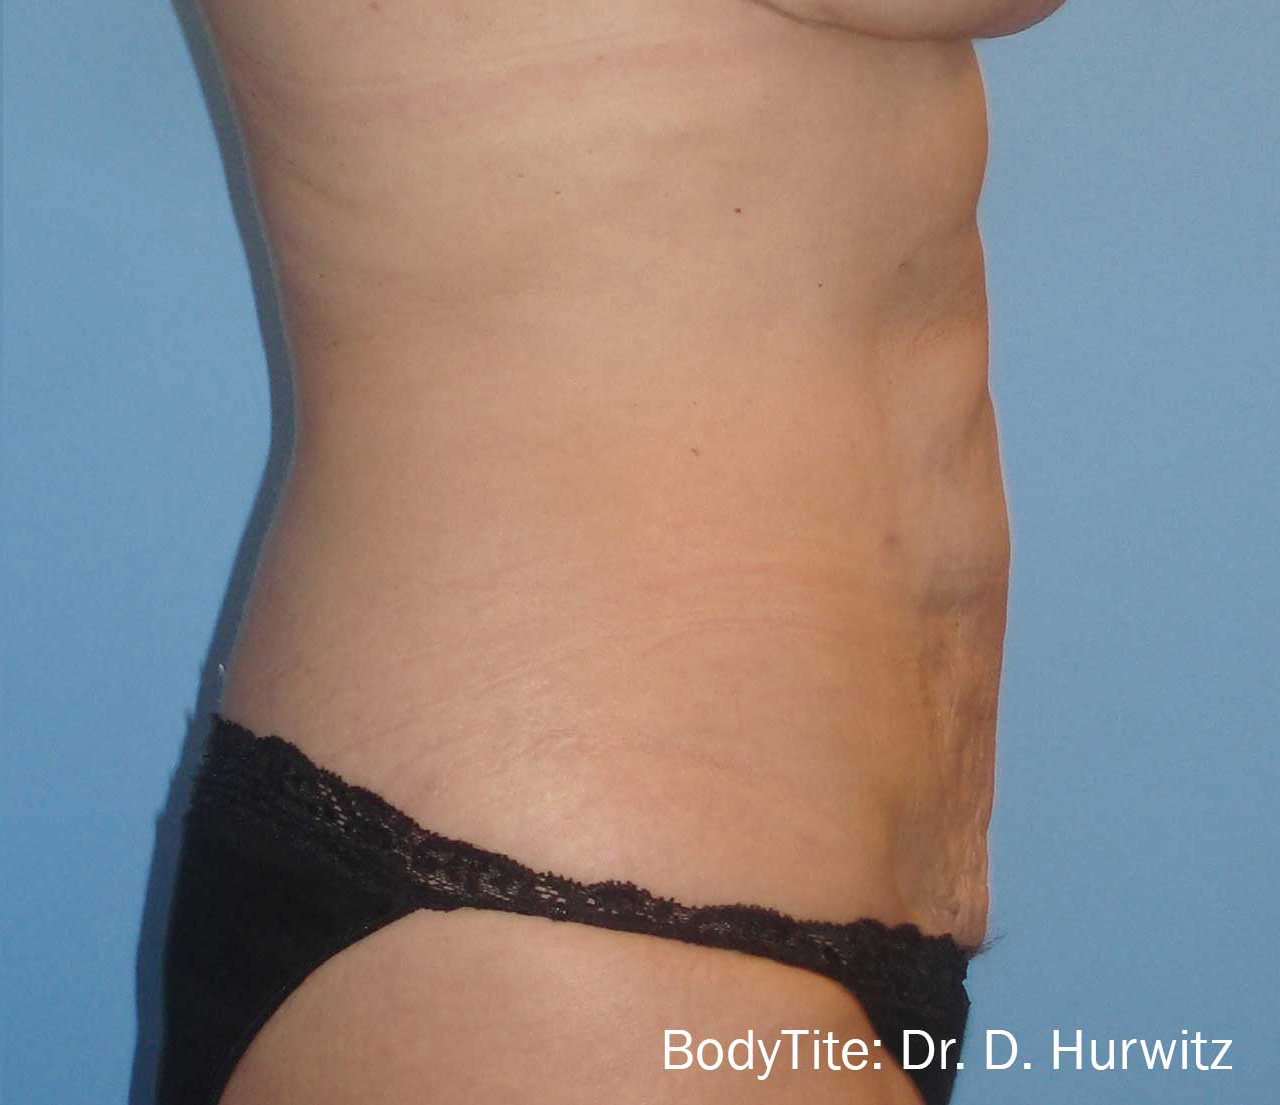 bodytite-dh2-after